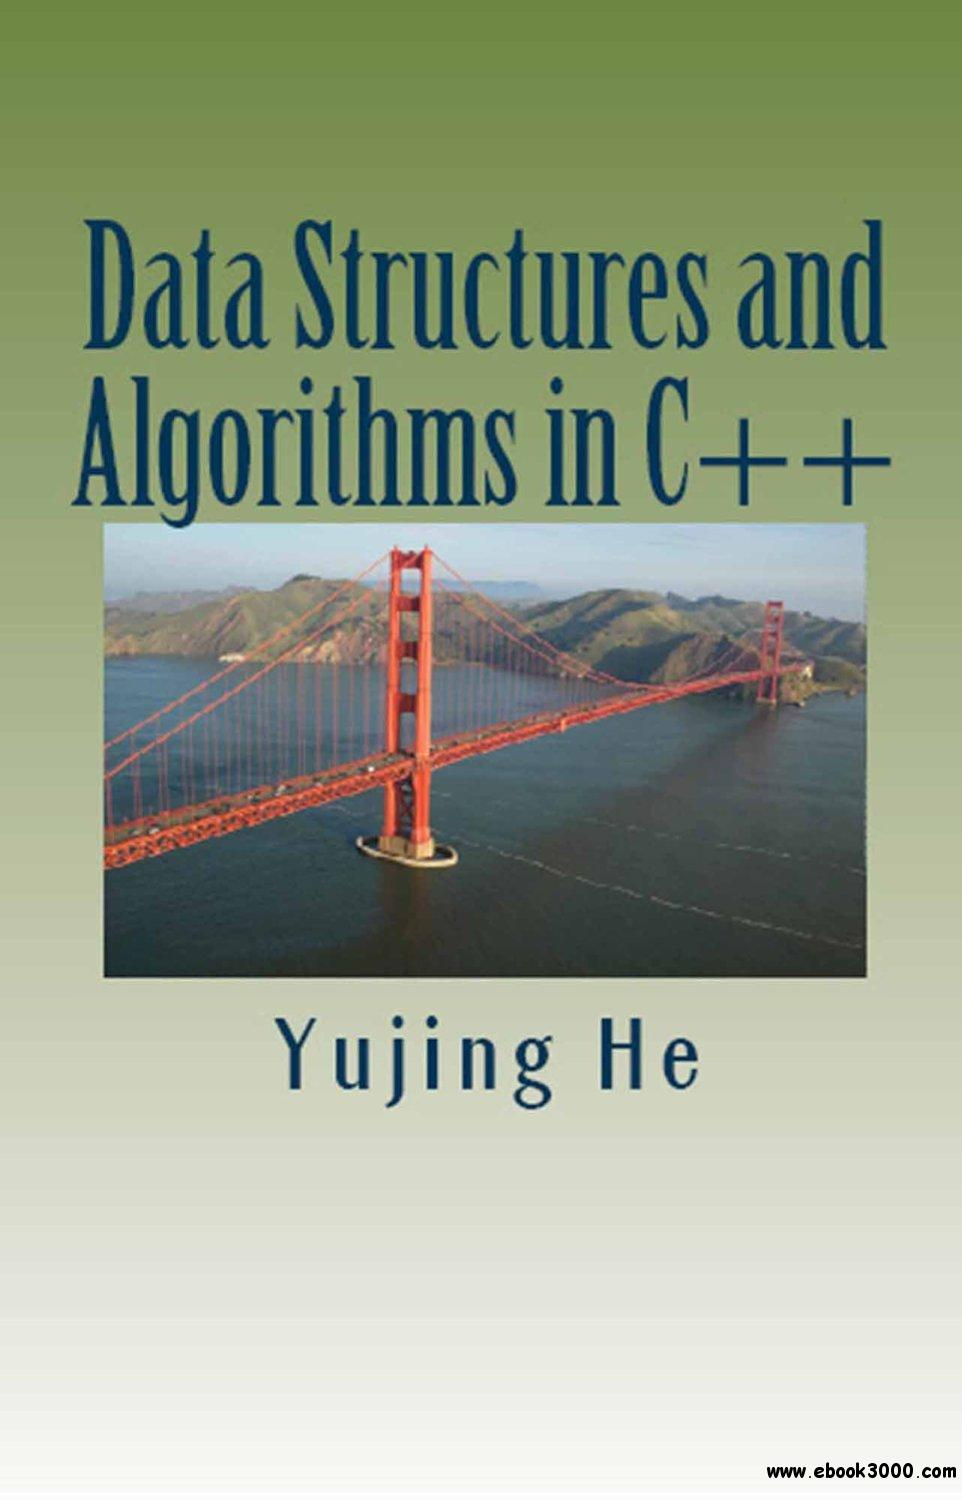 Download Data Structures and Algorithms in C++ Pdf Ebook